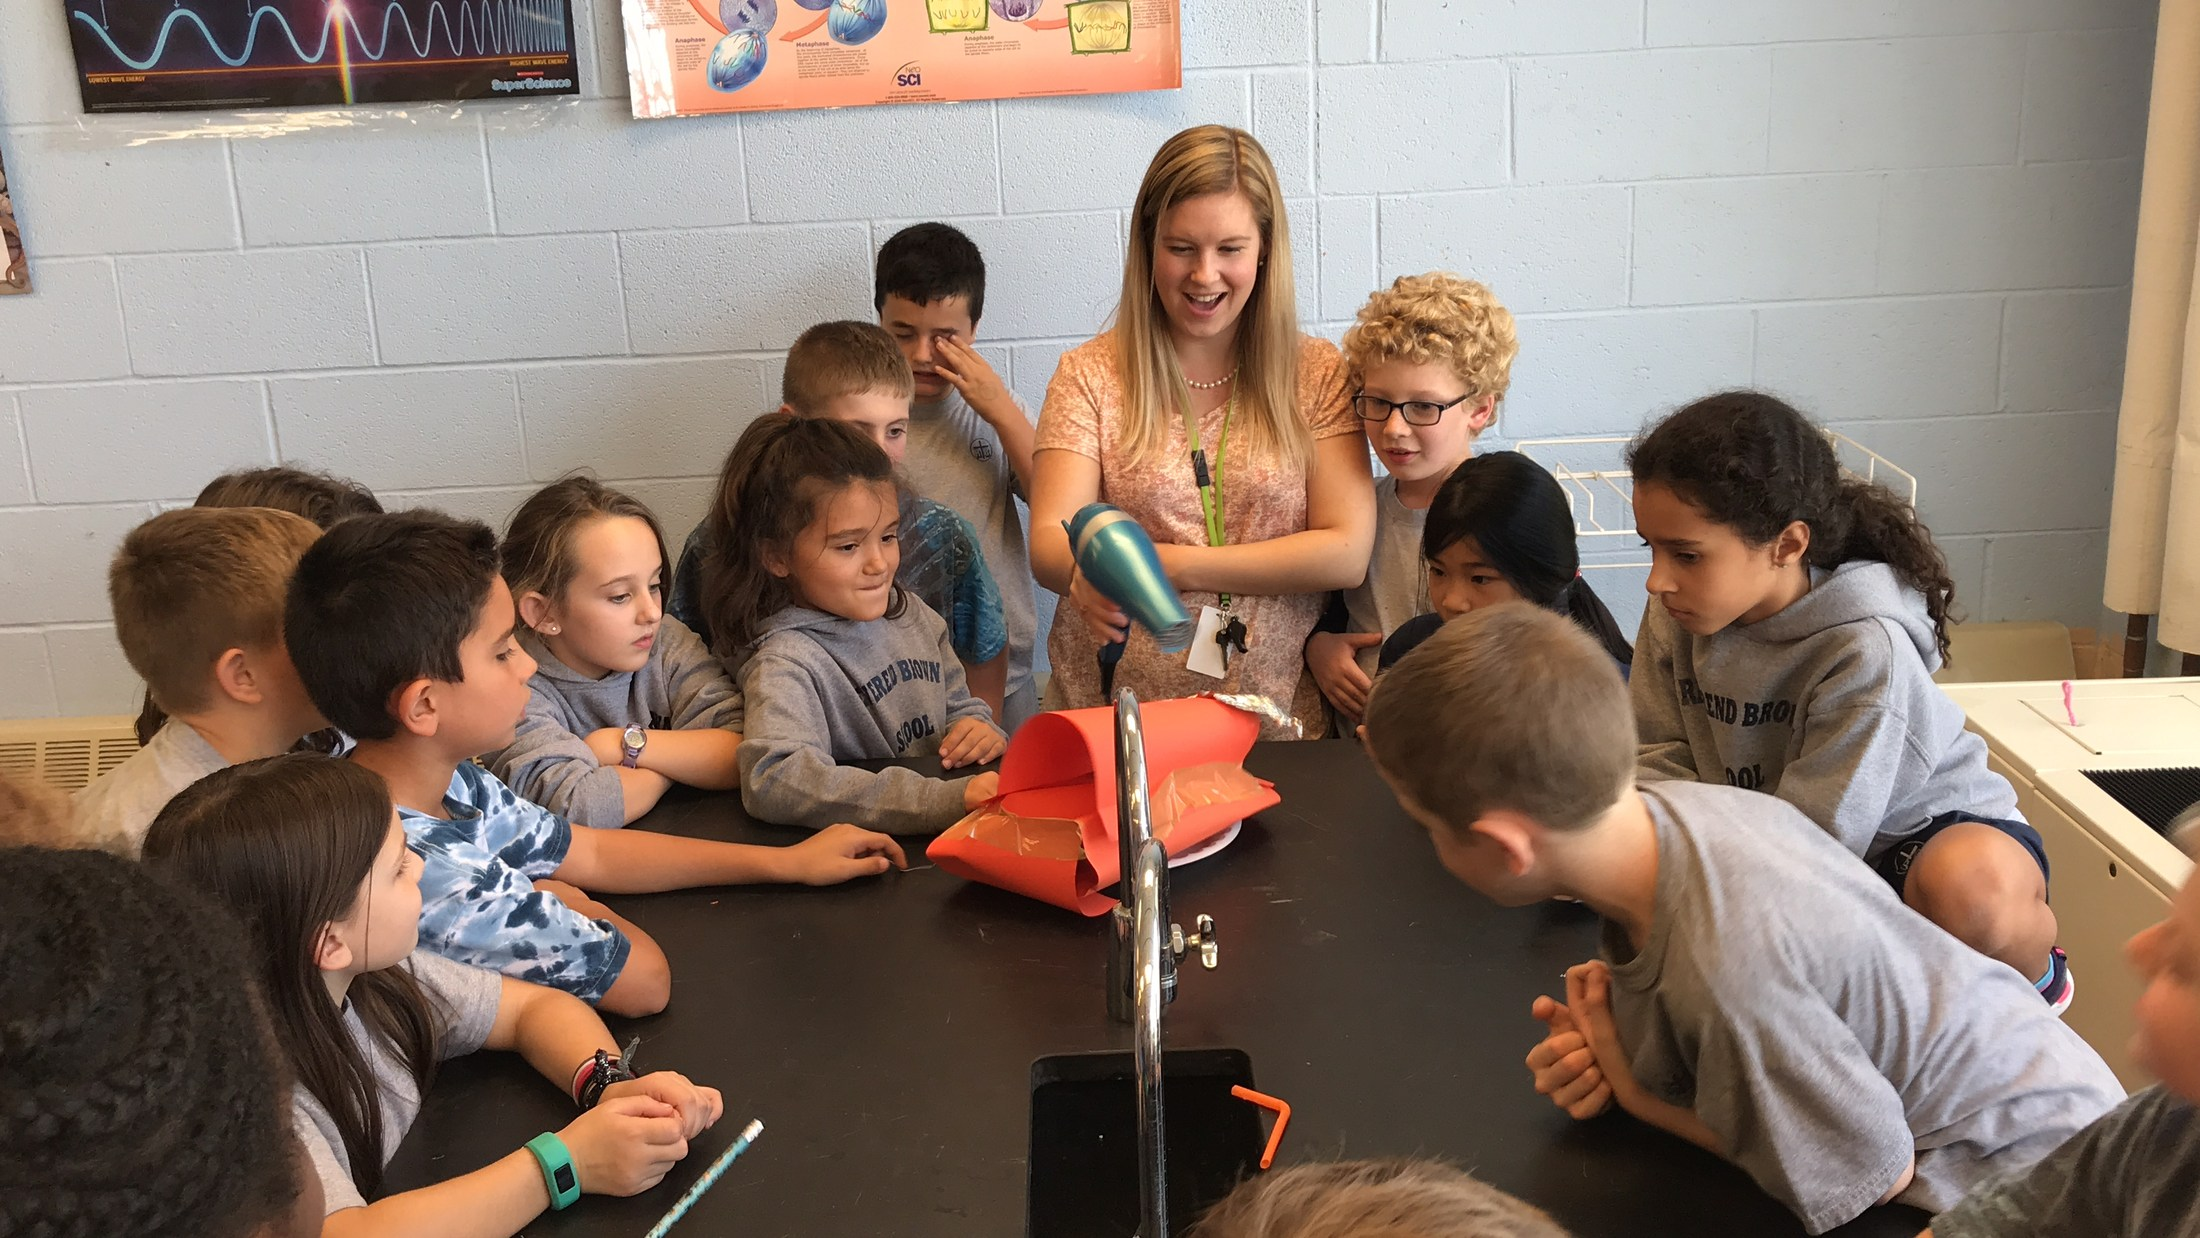 Students watch teacher use blow dryer during science experiment